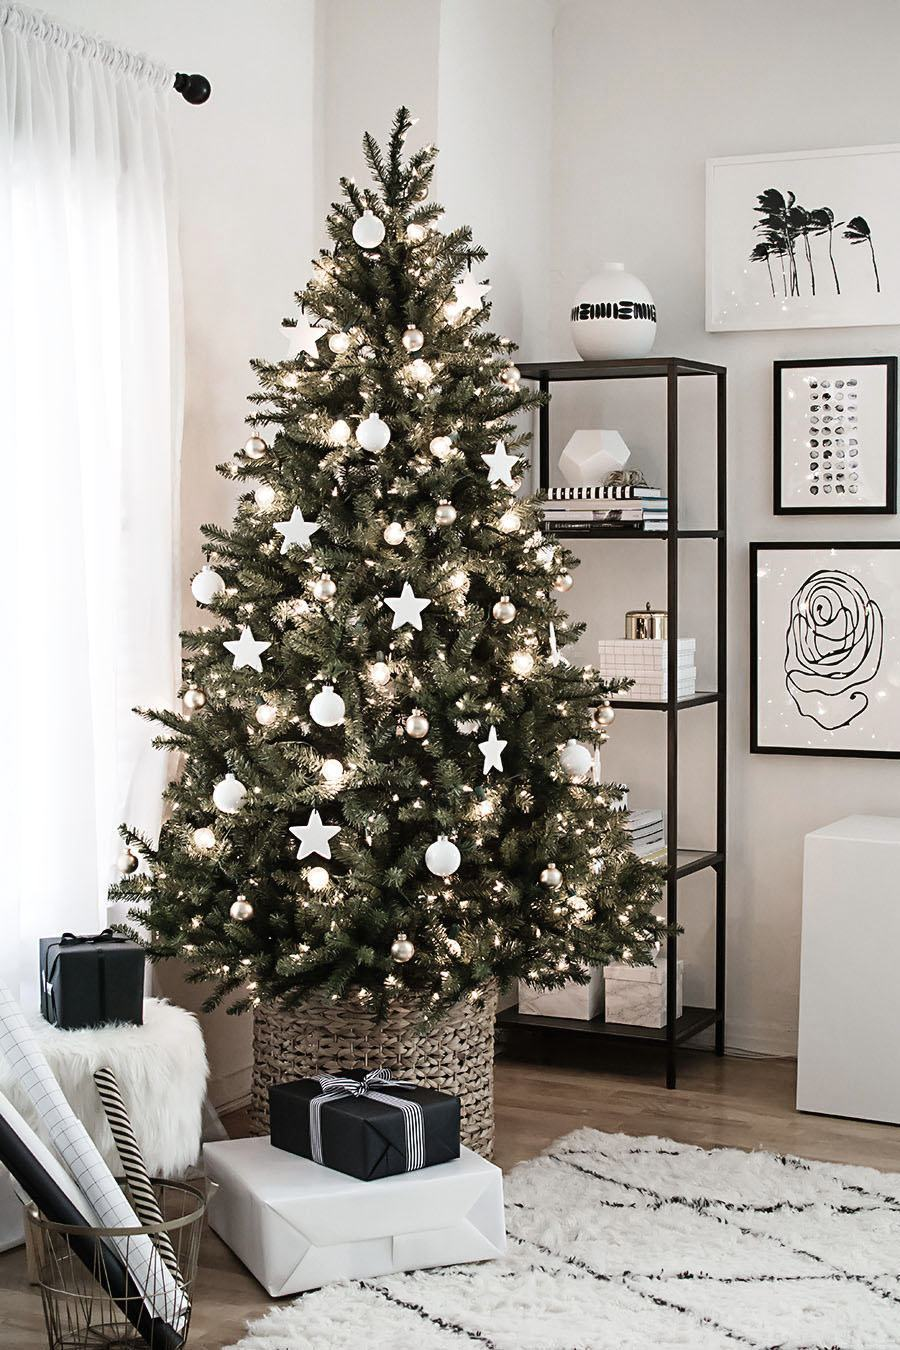 What's Hot on Pinterest: 5 Scandinavian Christmas Decorations